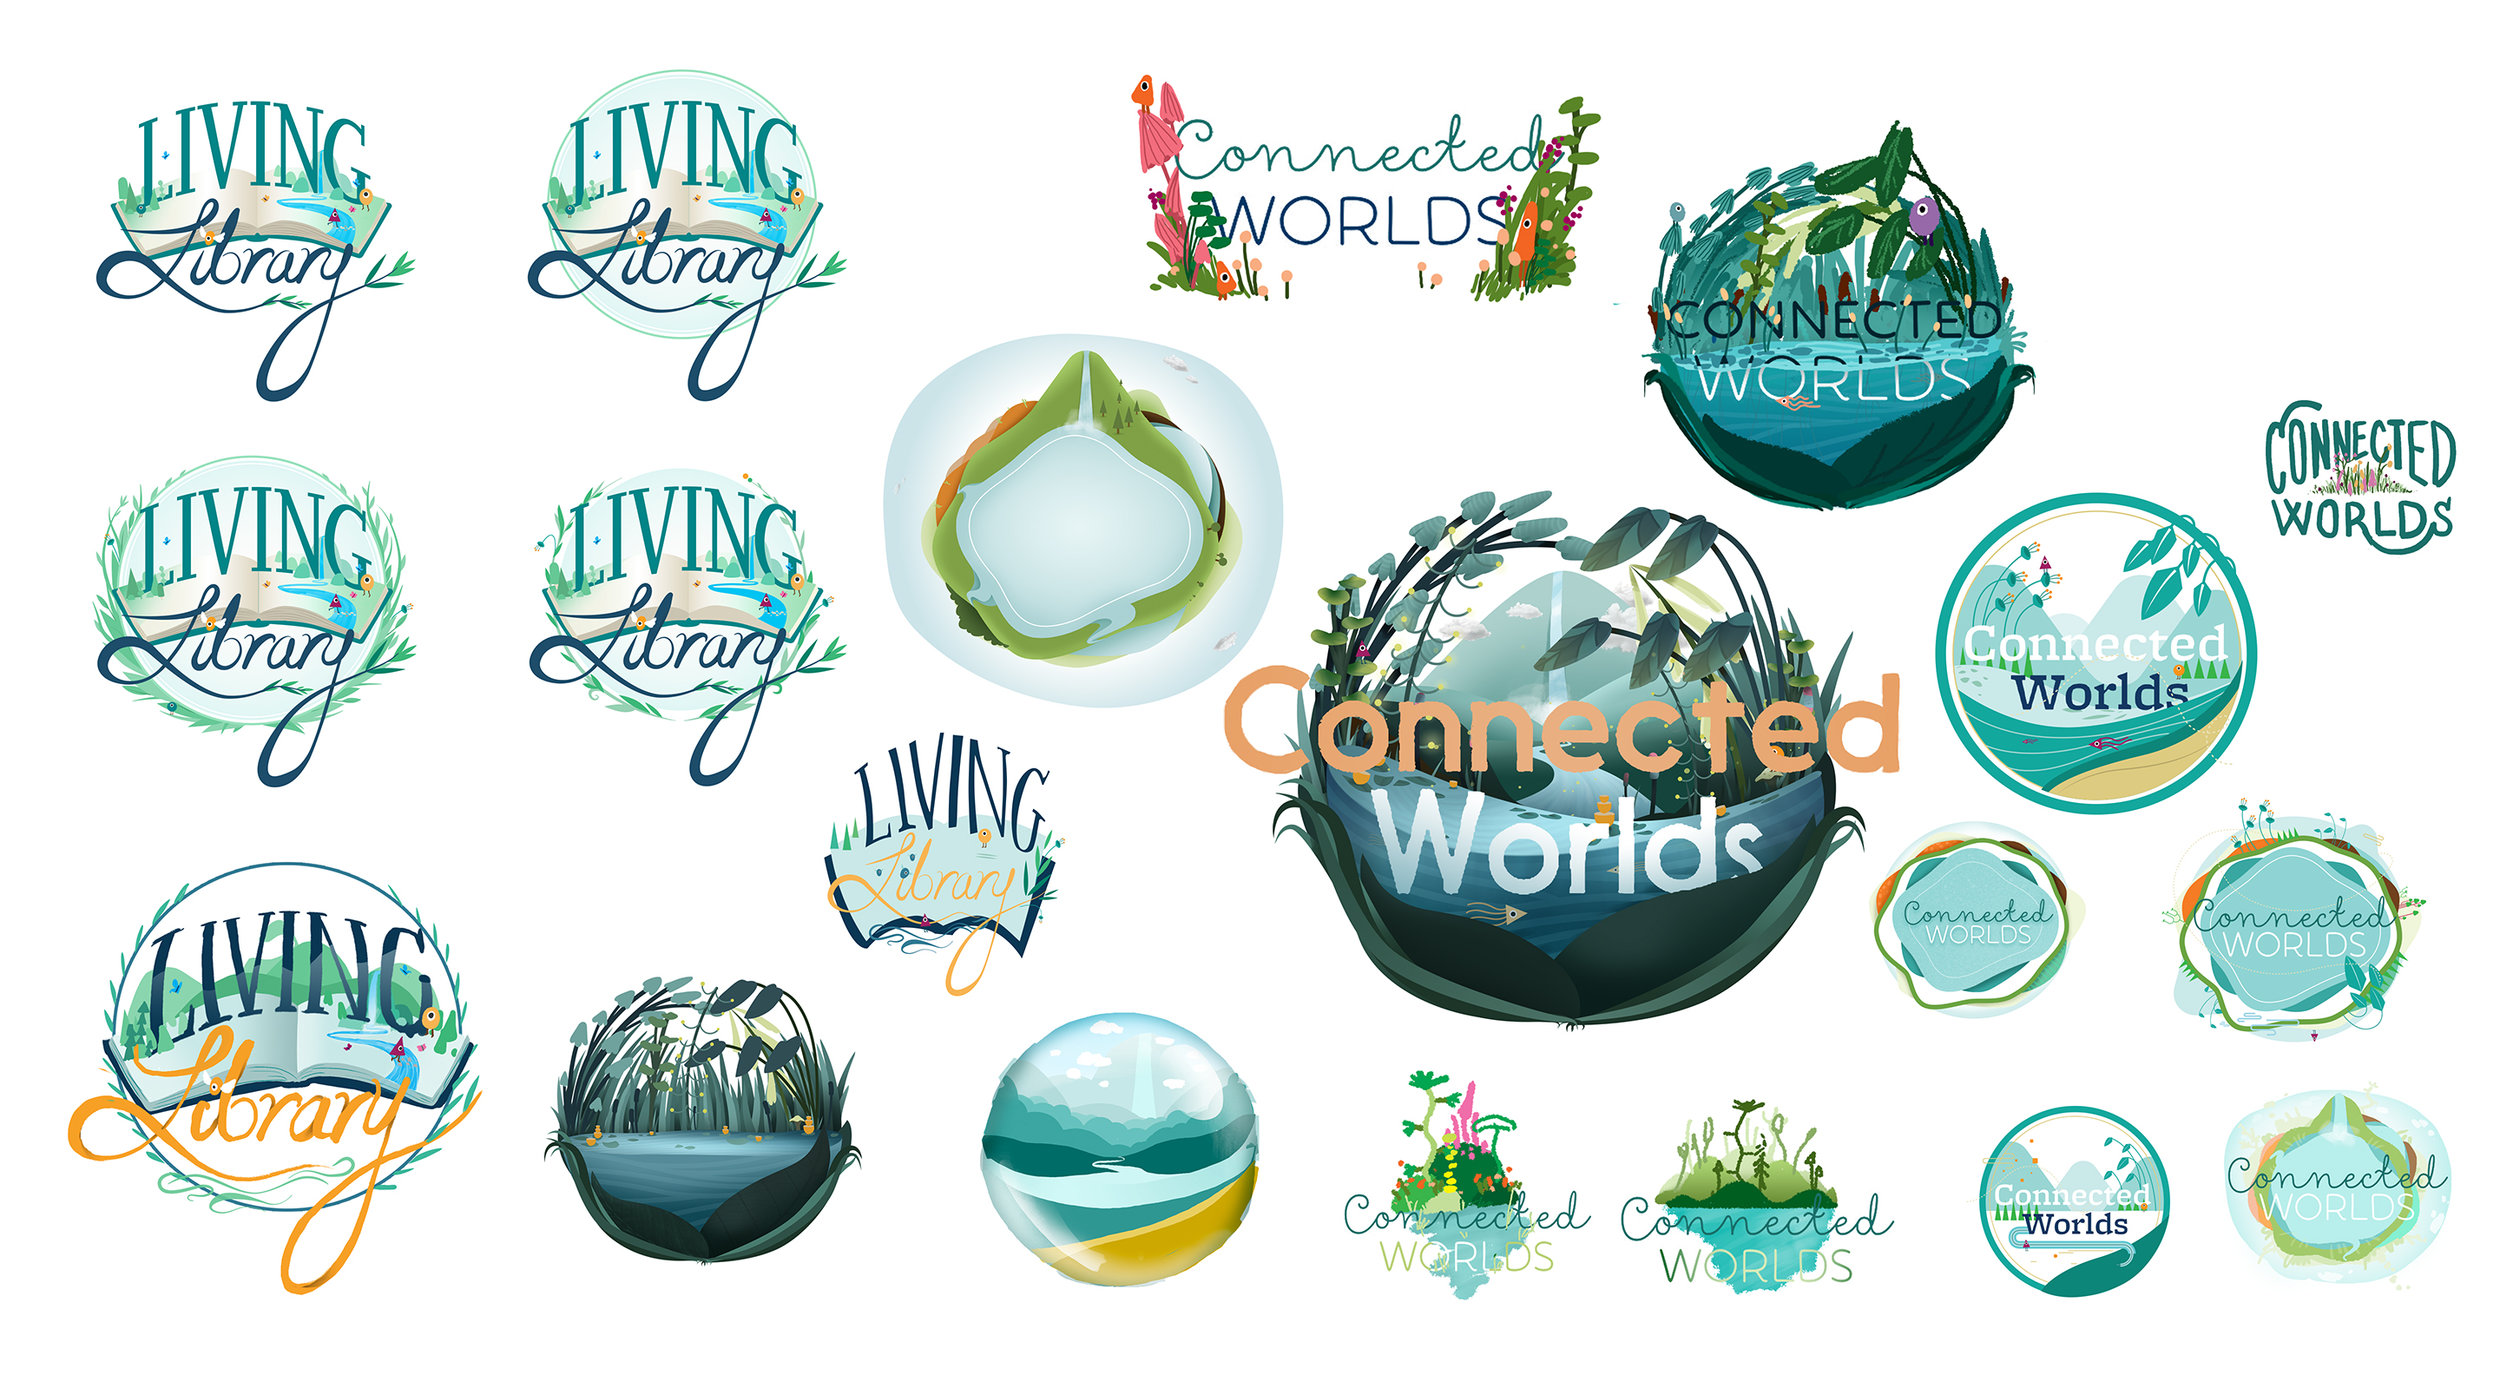 Connecteworlds_catalog08.jpg